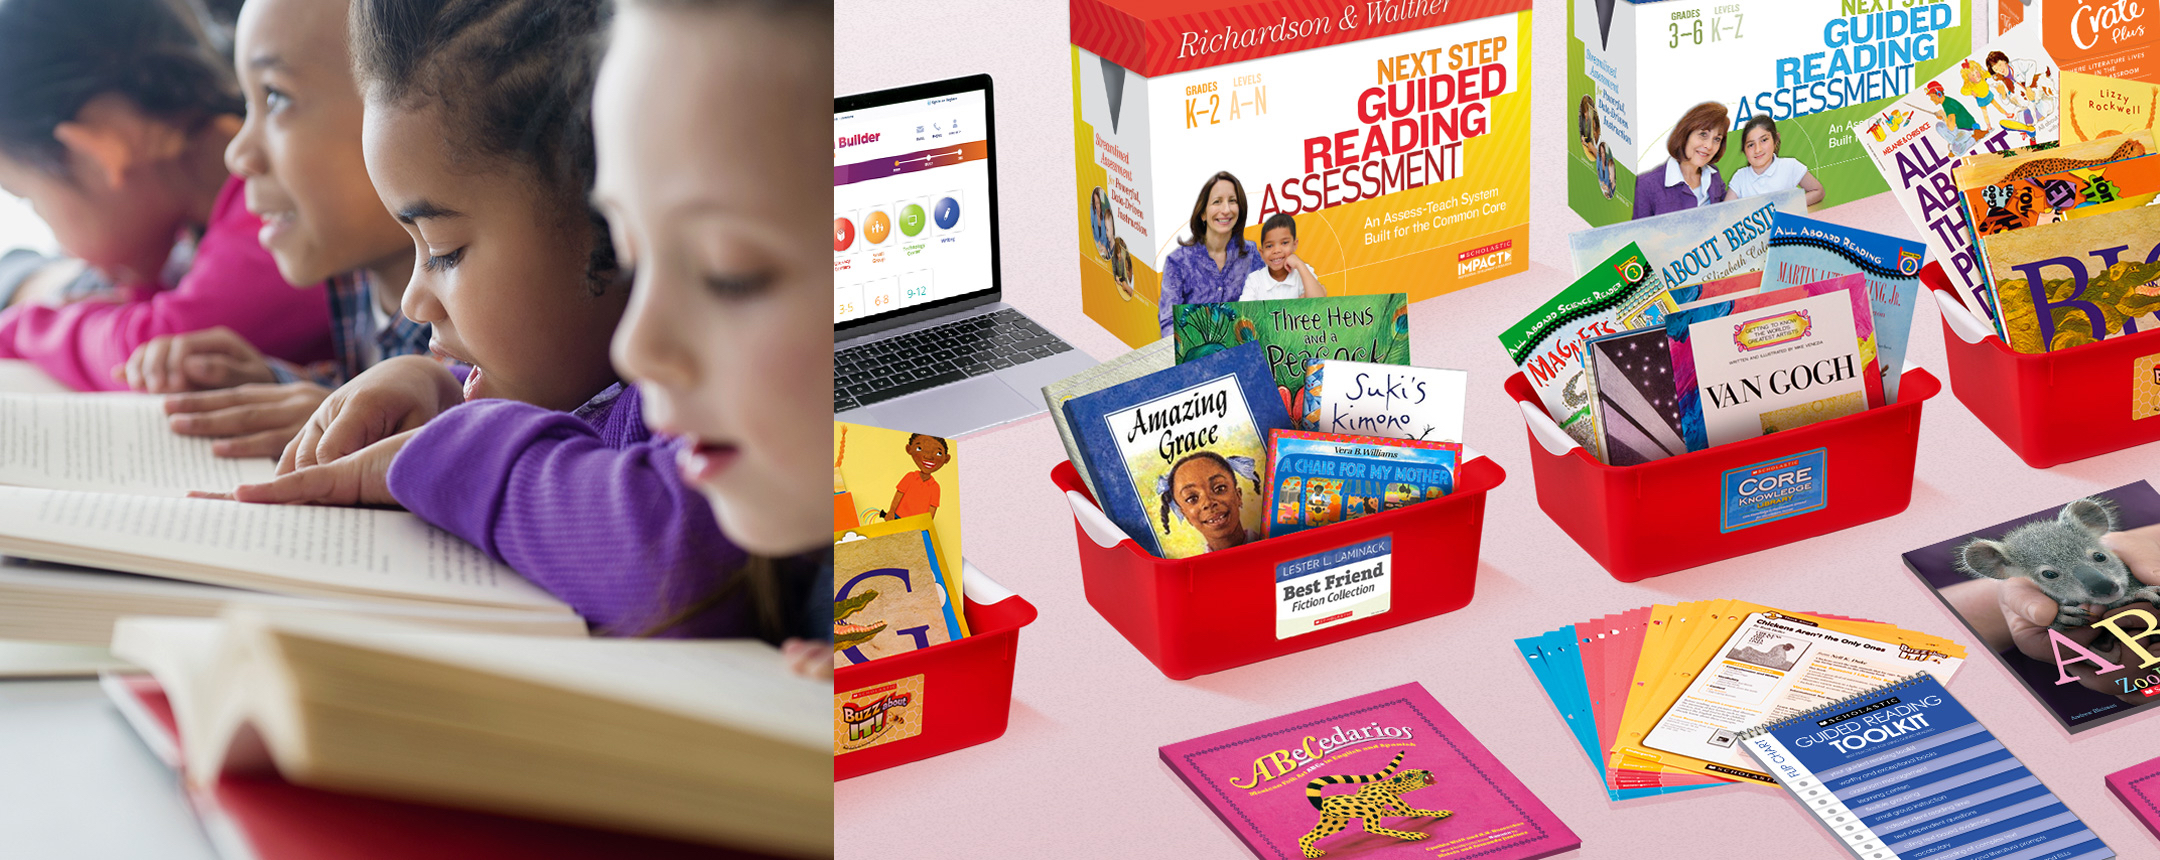 school place learn Learn more about bright horizon schools in our elementary schools  a great place for parenting tips, at-home learning activities for all grades and.